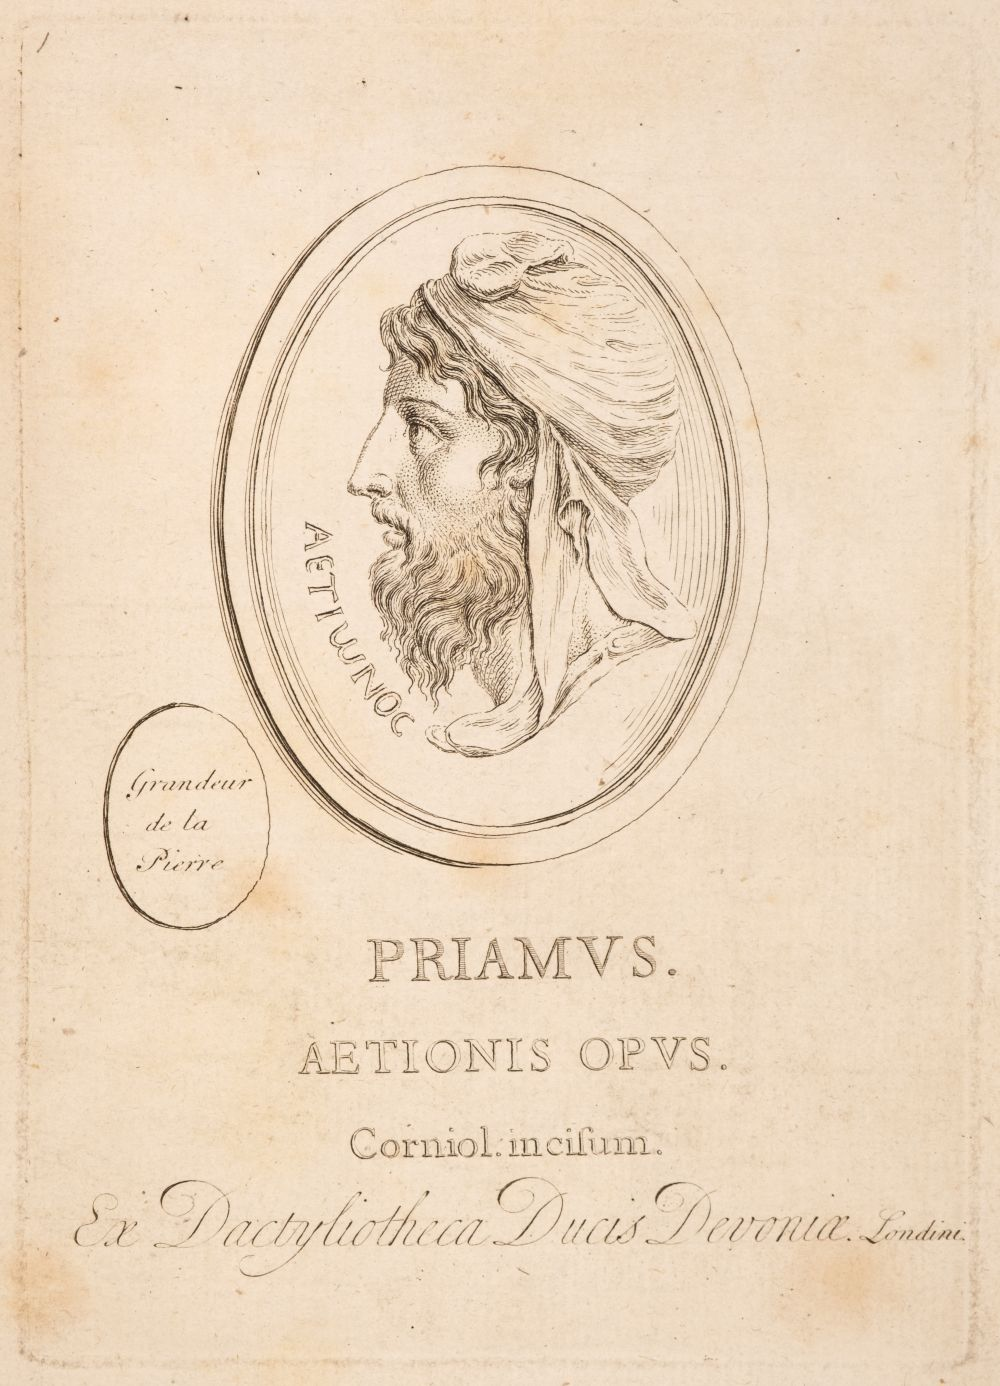 Devonshire Gems. Duke of Devonshire's Collection of Gems, privately printed, circa 1790 - Image 2 of 16